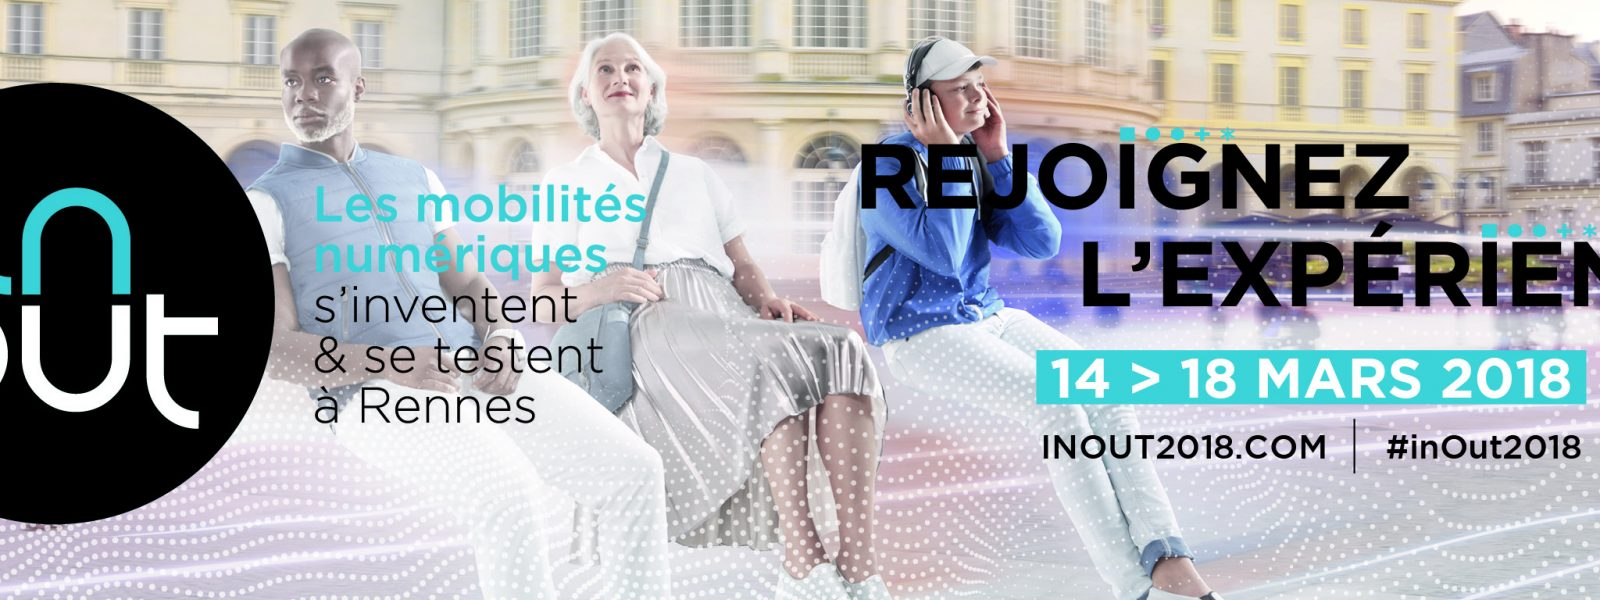 Inout 2018 - Rennes